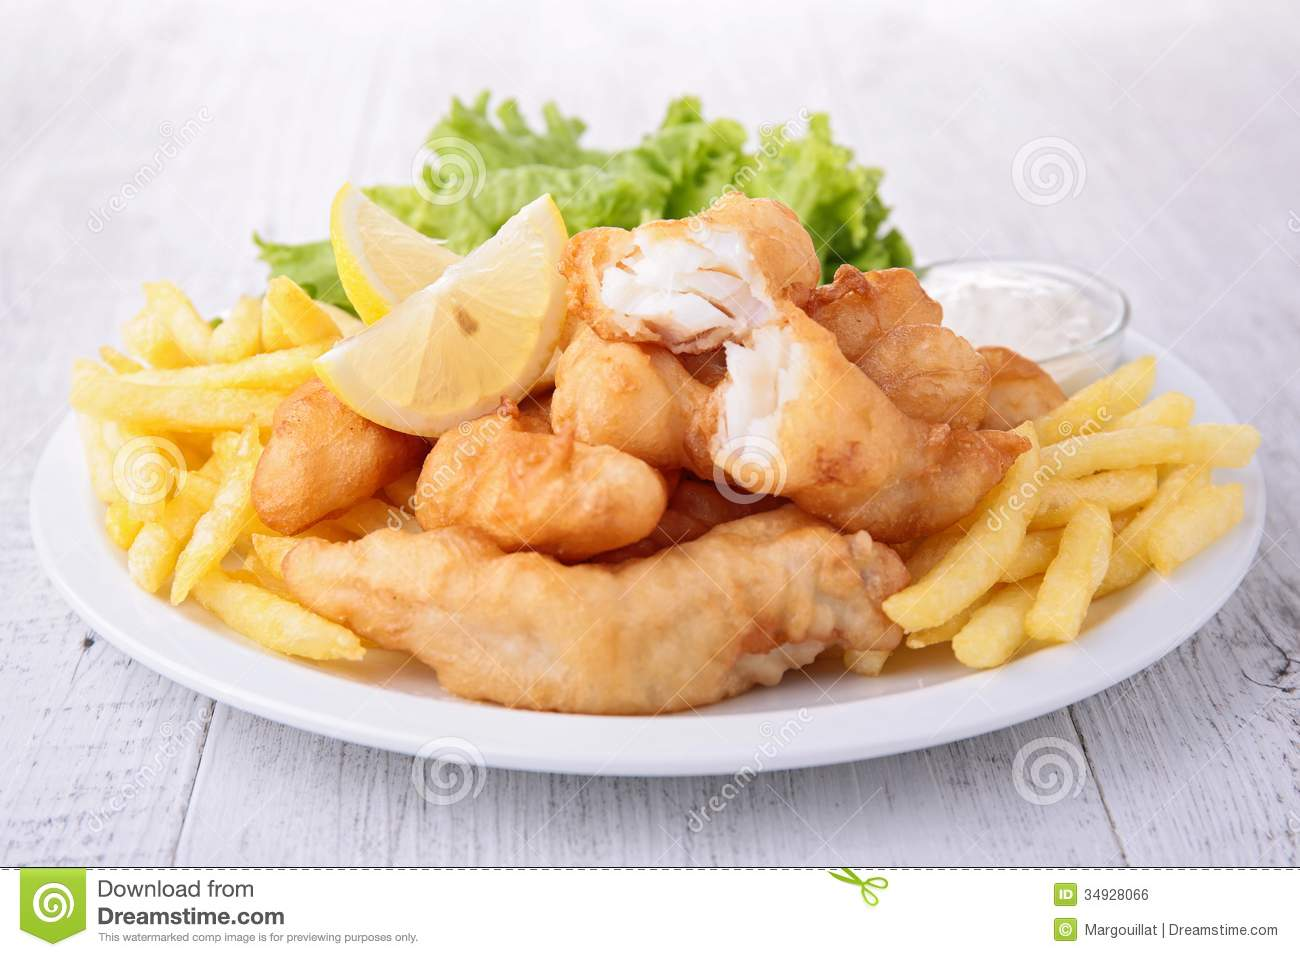 Fish and chips with salad royalty free stock image image for Fish and salad